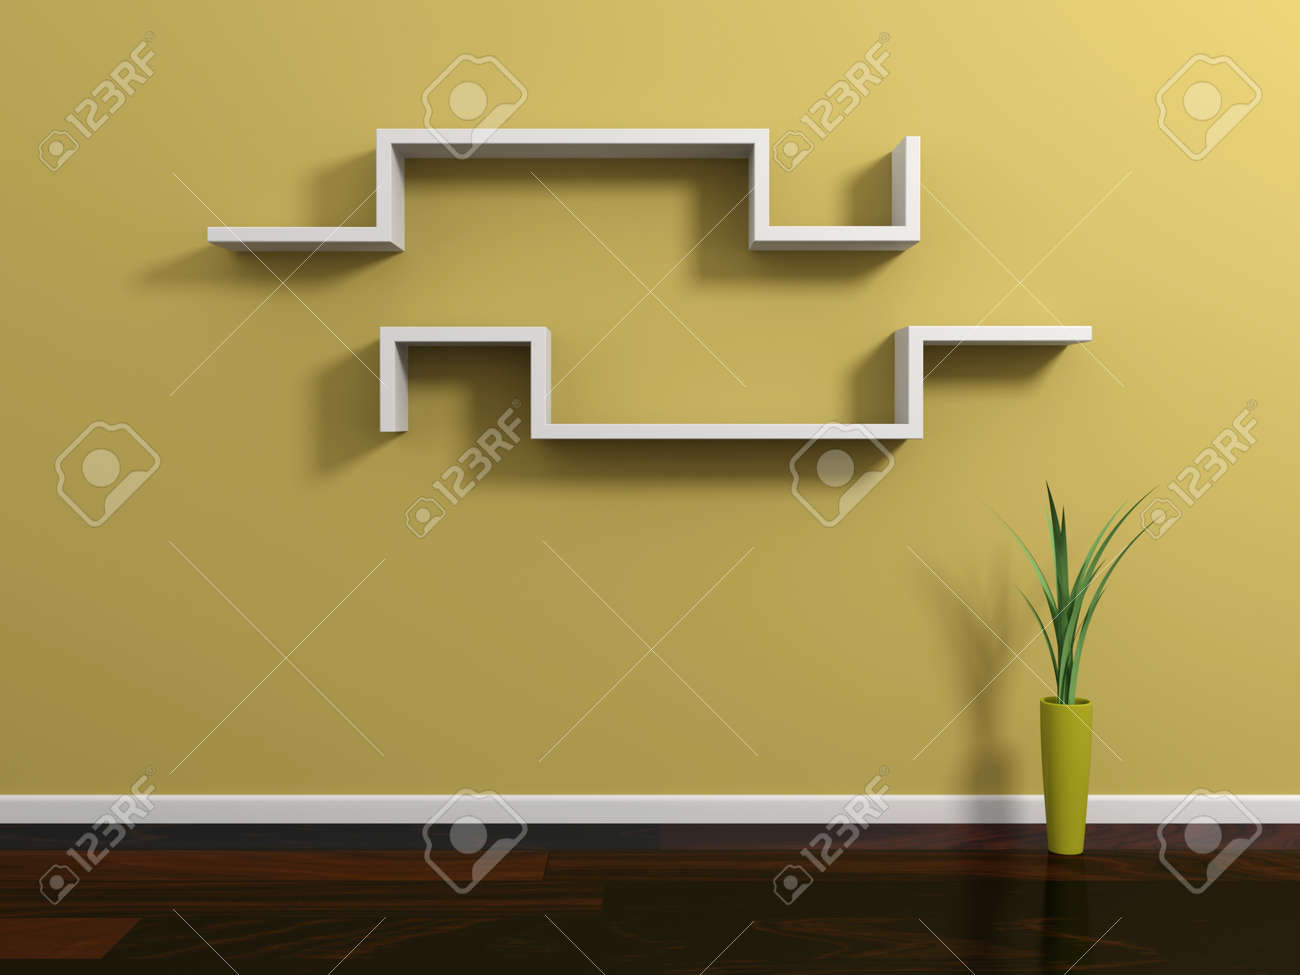 interior composition with modern shelf on yellow wall stock photo  - interior composition with modern shelf on yellow wall stock photo